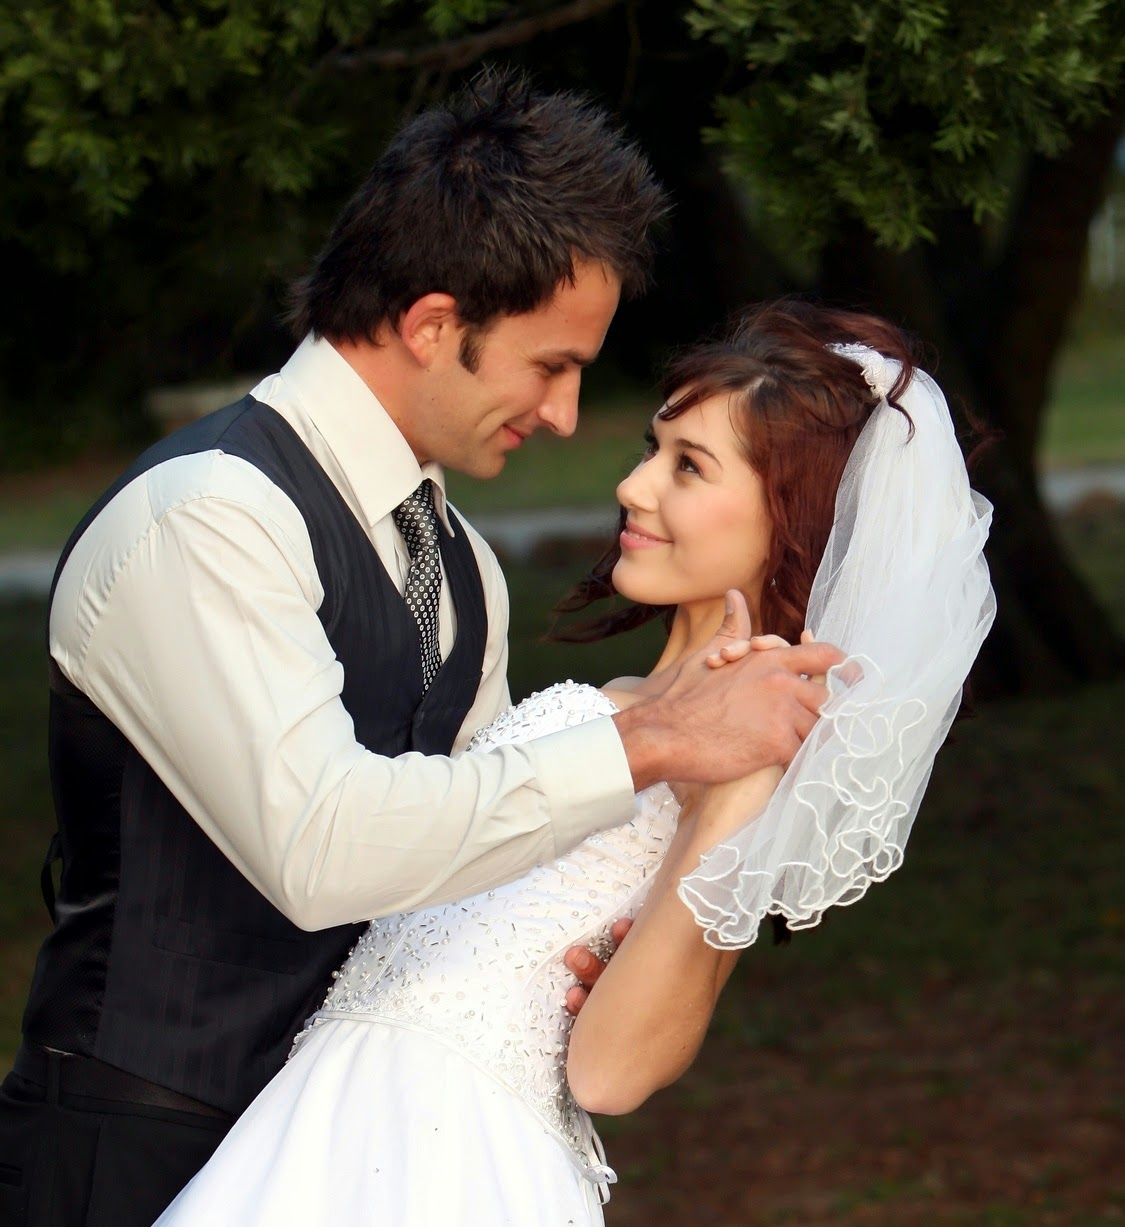 Top First Dance Wedding Songs 2014 List